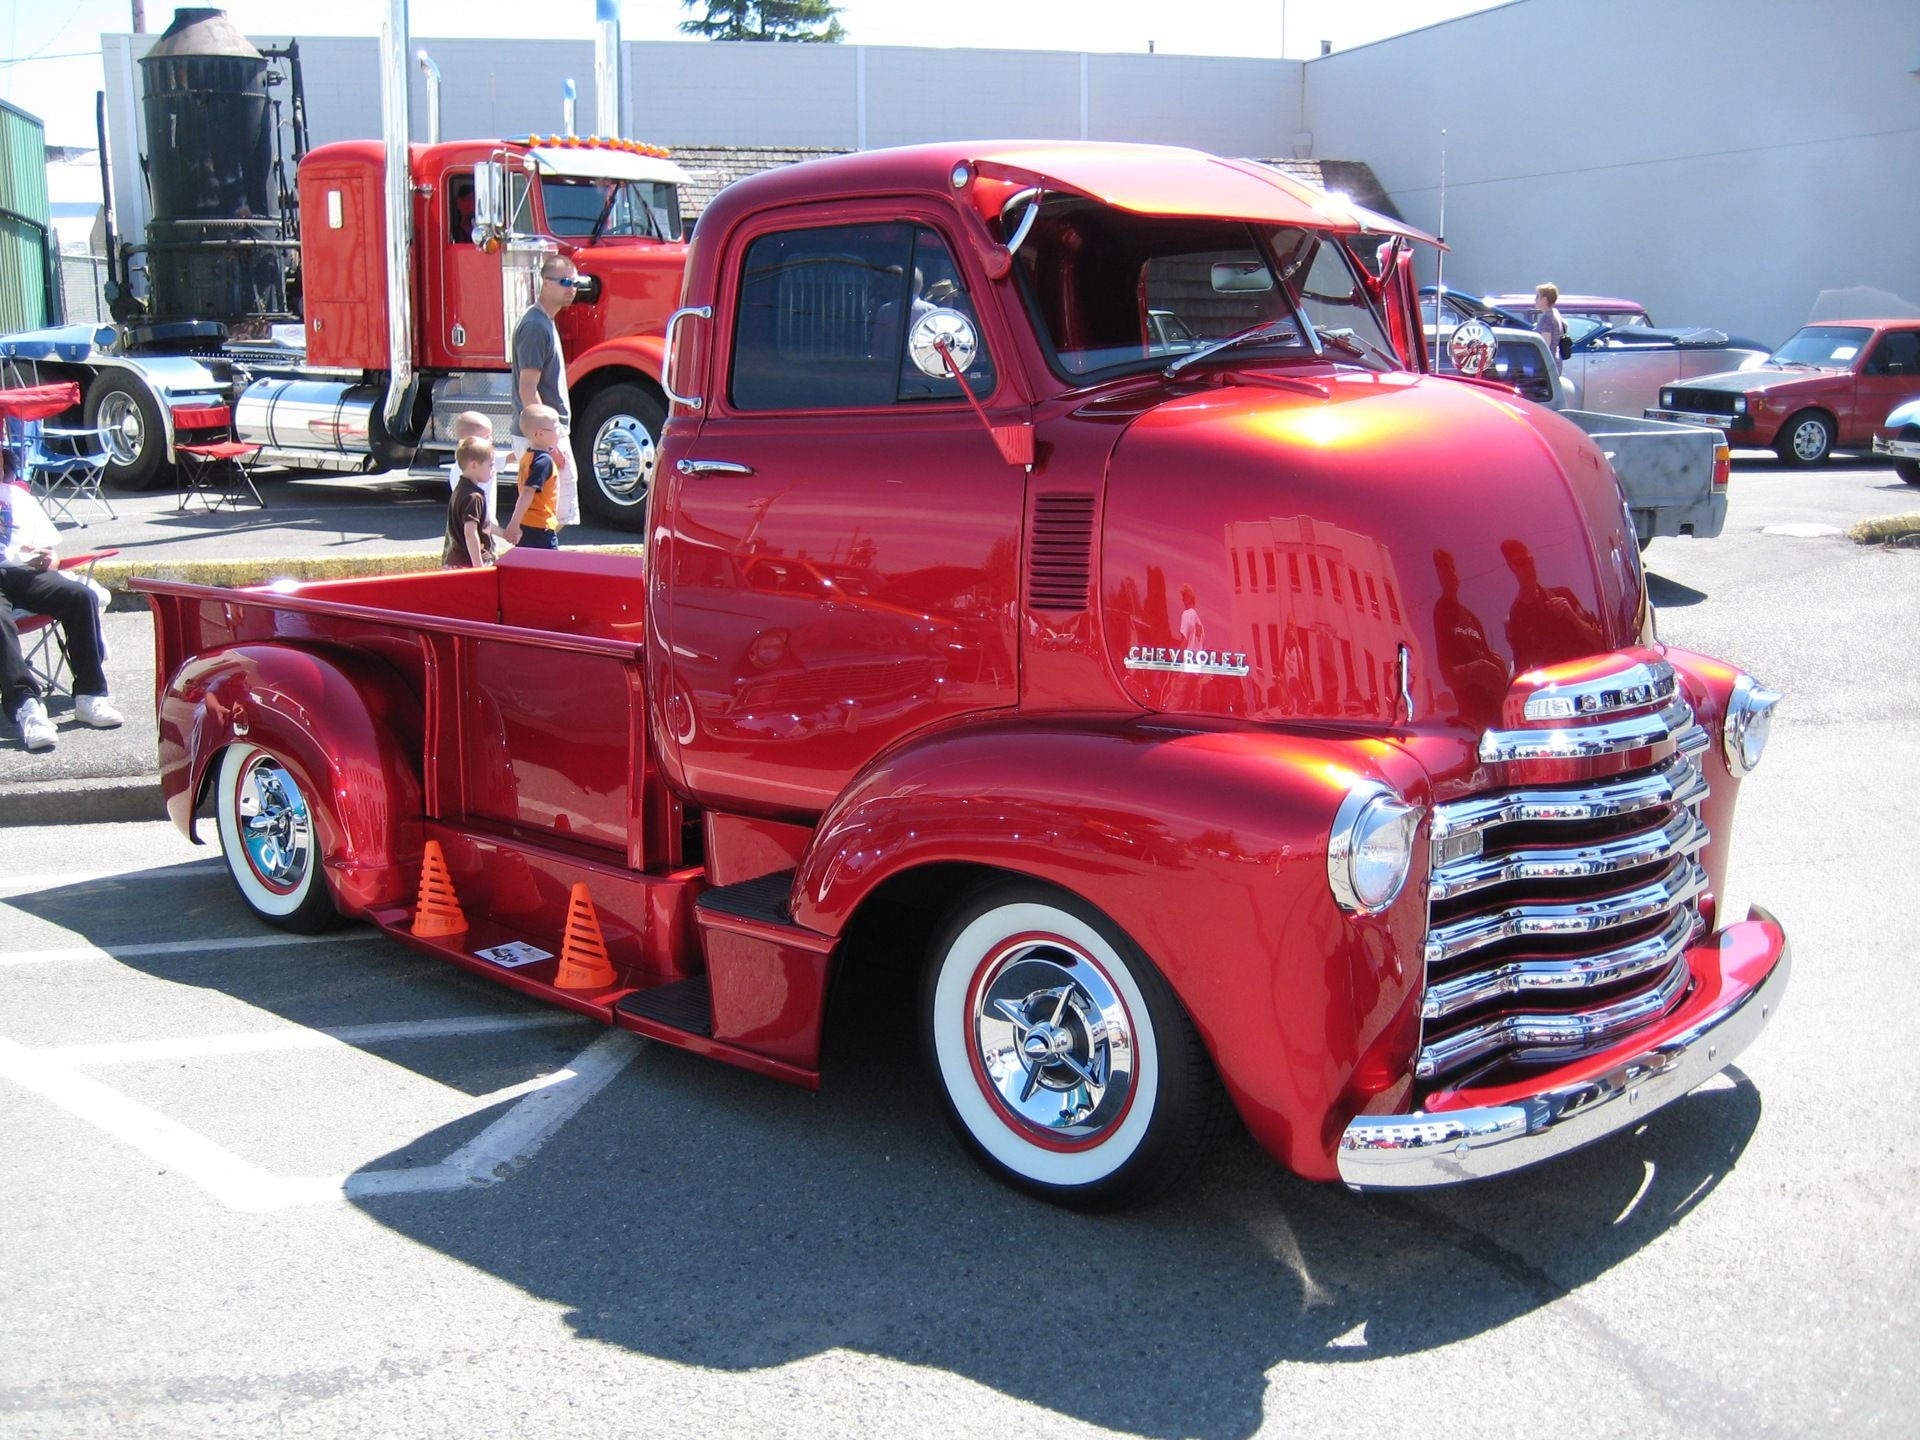 1954 Kchevy Coe Chevy Cars And Rats T Ford Truck 48 54 Chevrolet